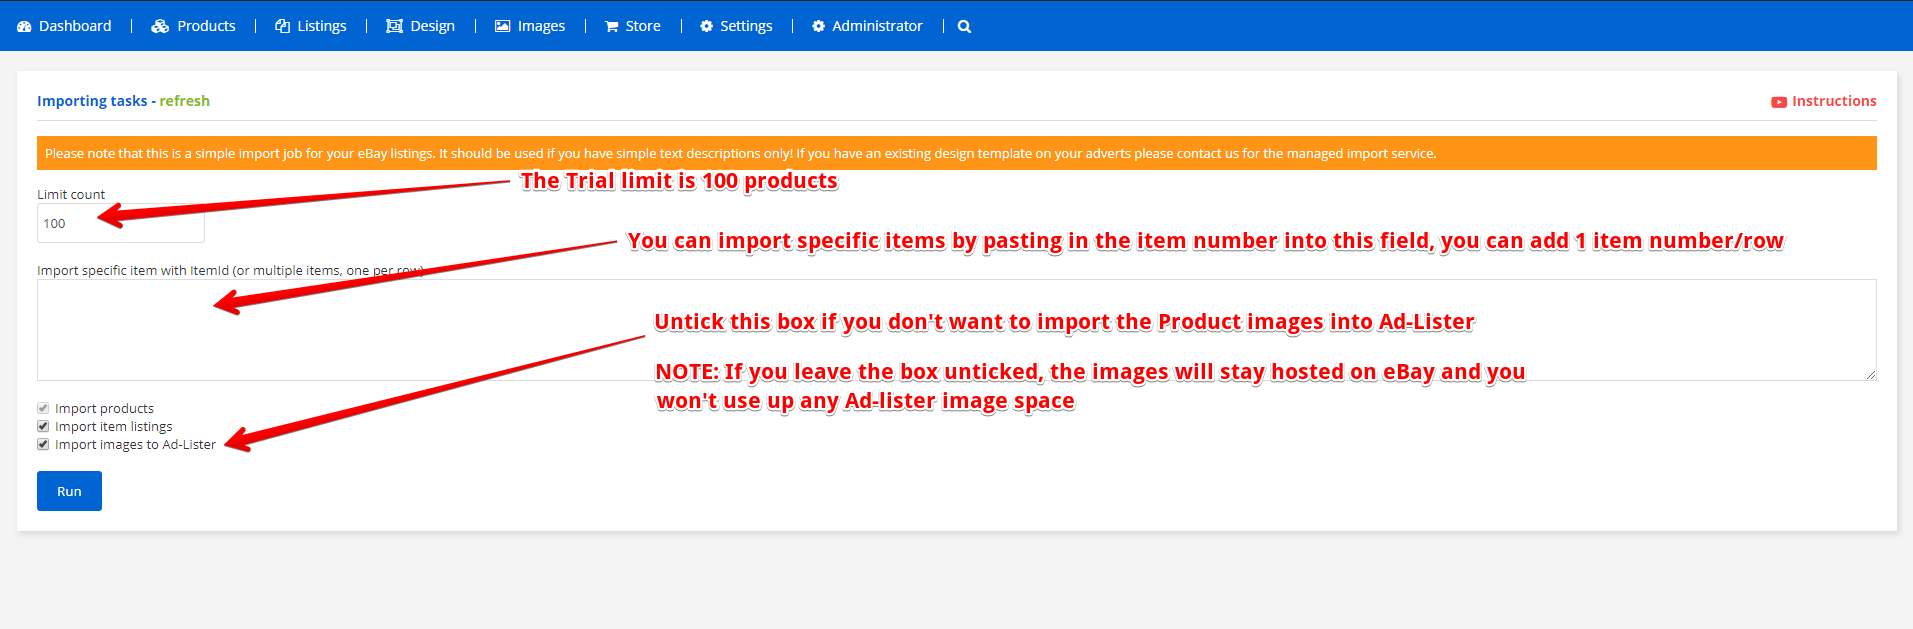 Selecting which options to import from eBay